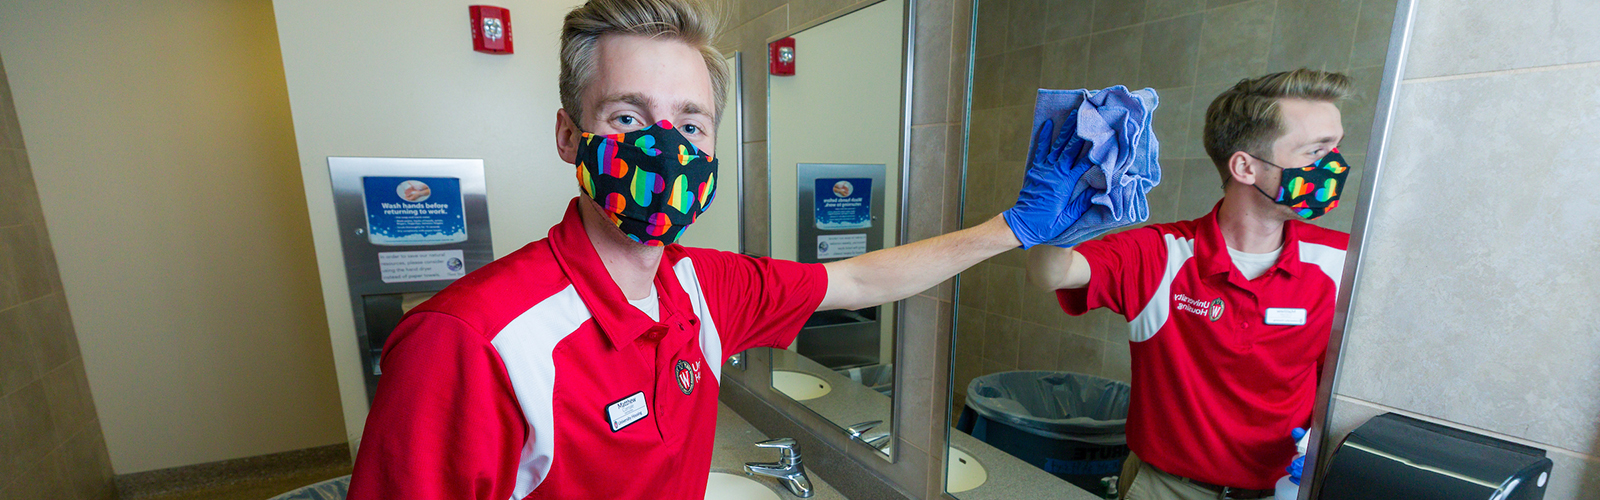 Facilities student employee cleaning a restroom